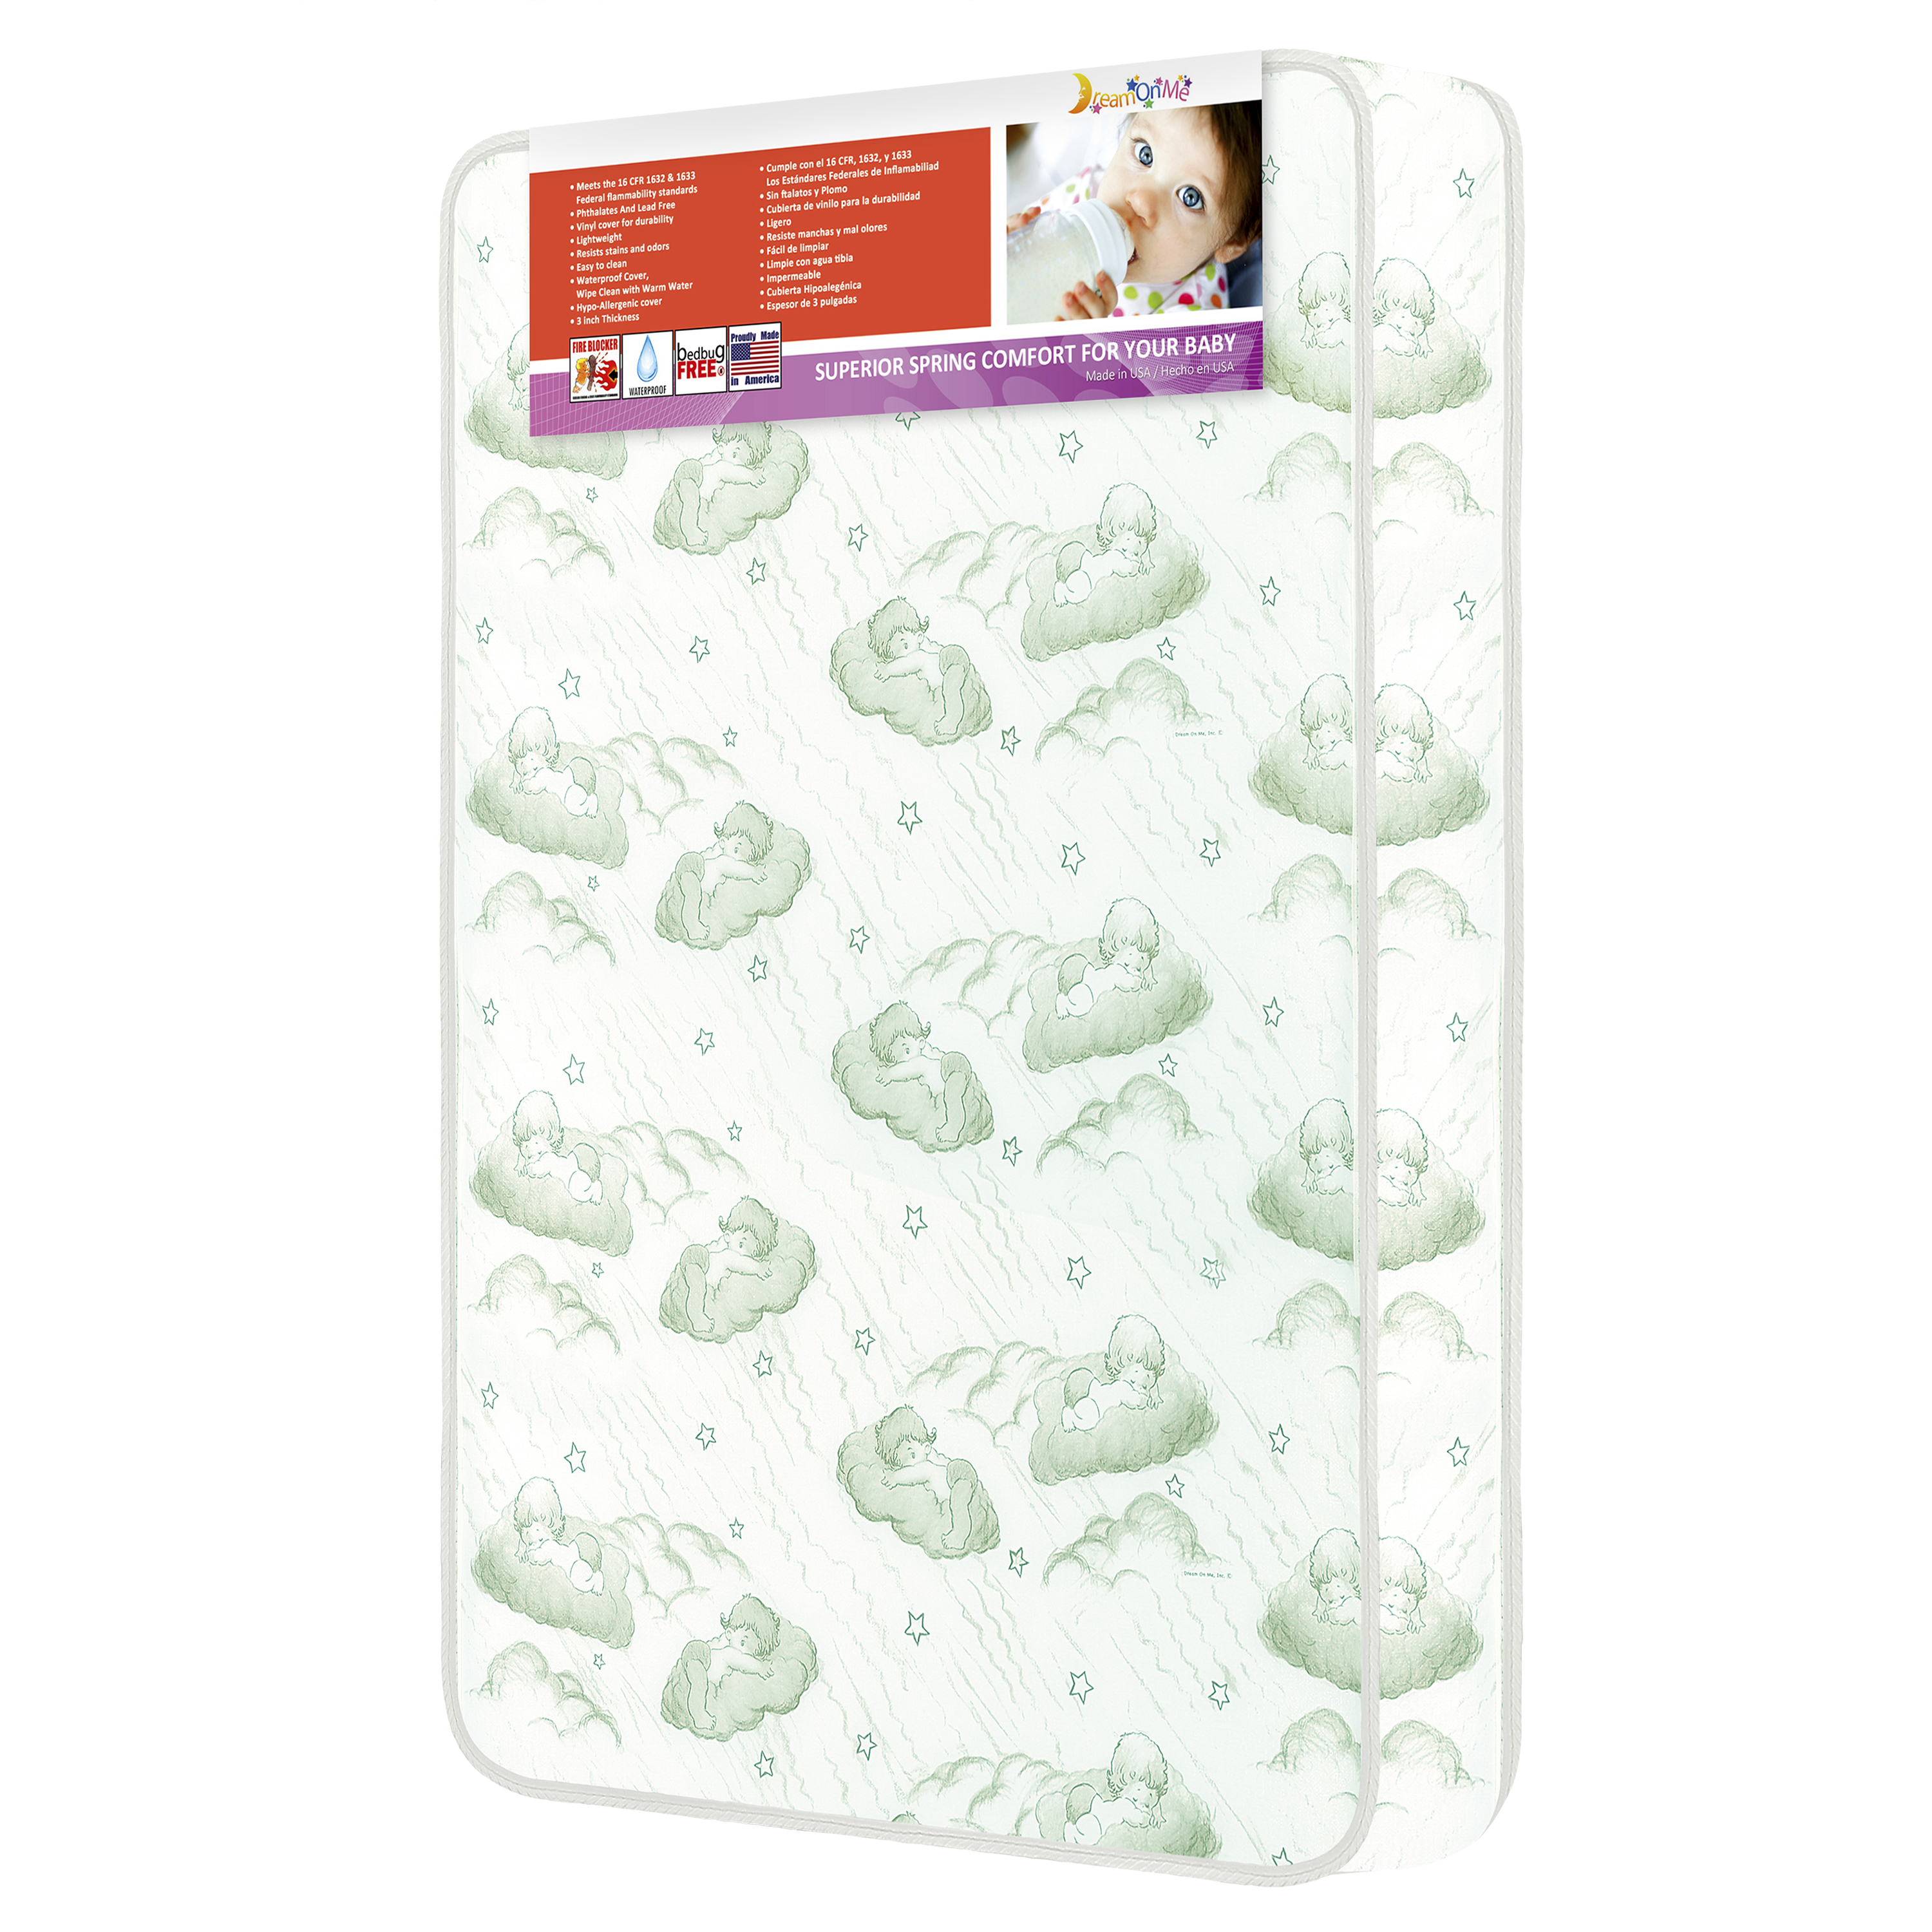 "Dream On Me 3"" Innerspring Crib and Toddler Mattress, Green Cloud"